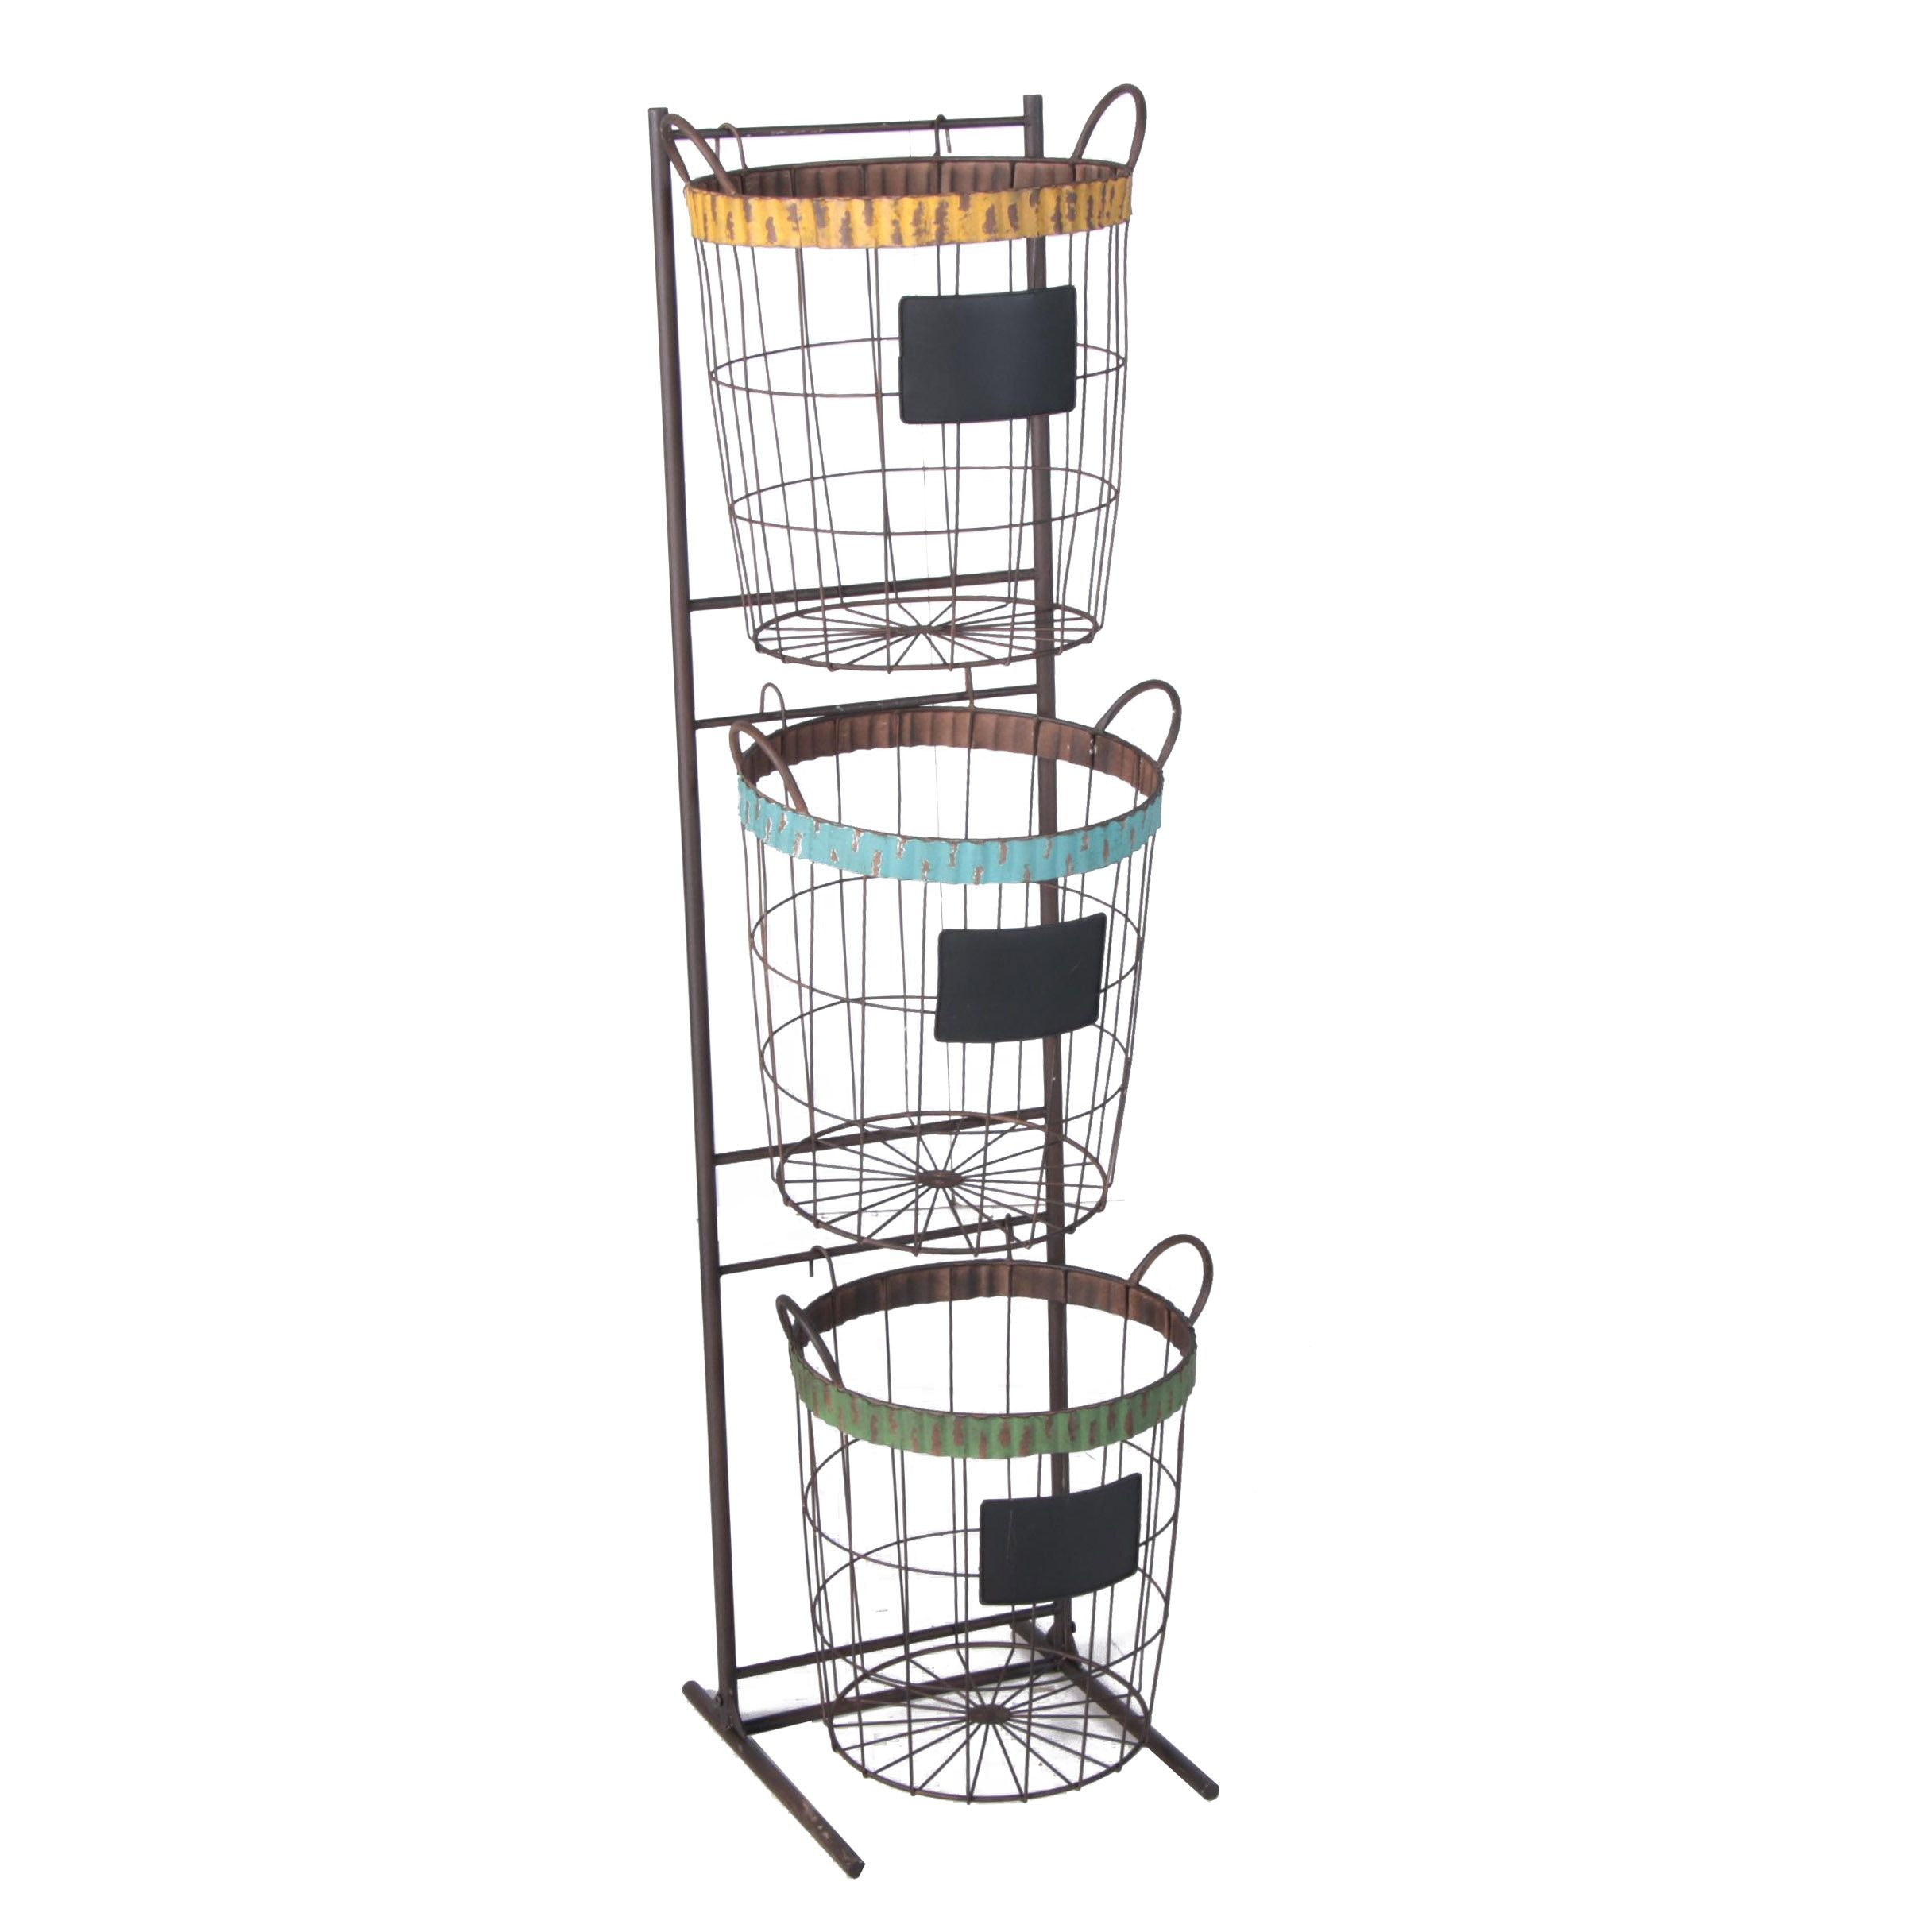 Industrial Style Metal Fruit Baskets with Tiered Display Stand, 21st Century